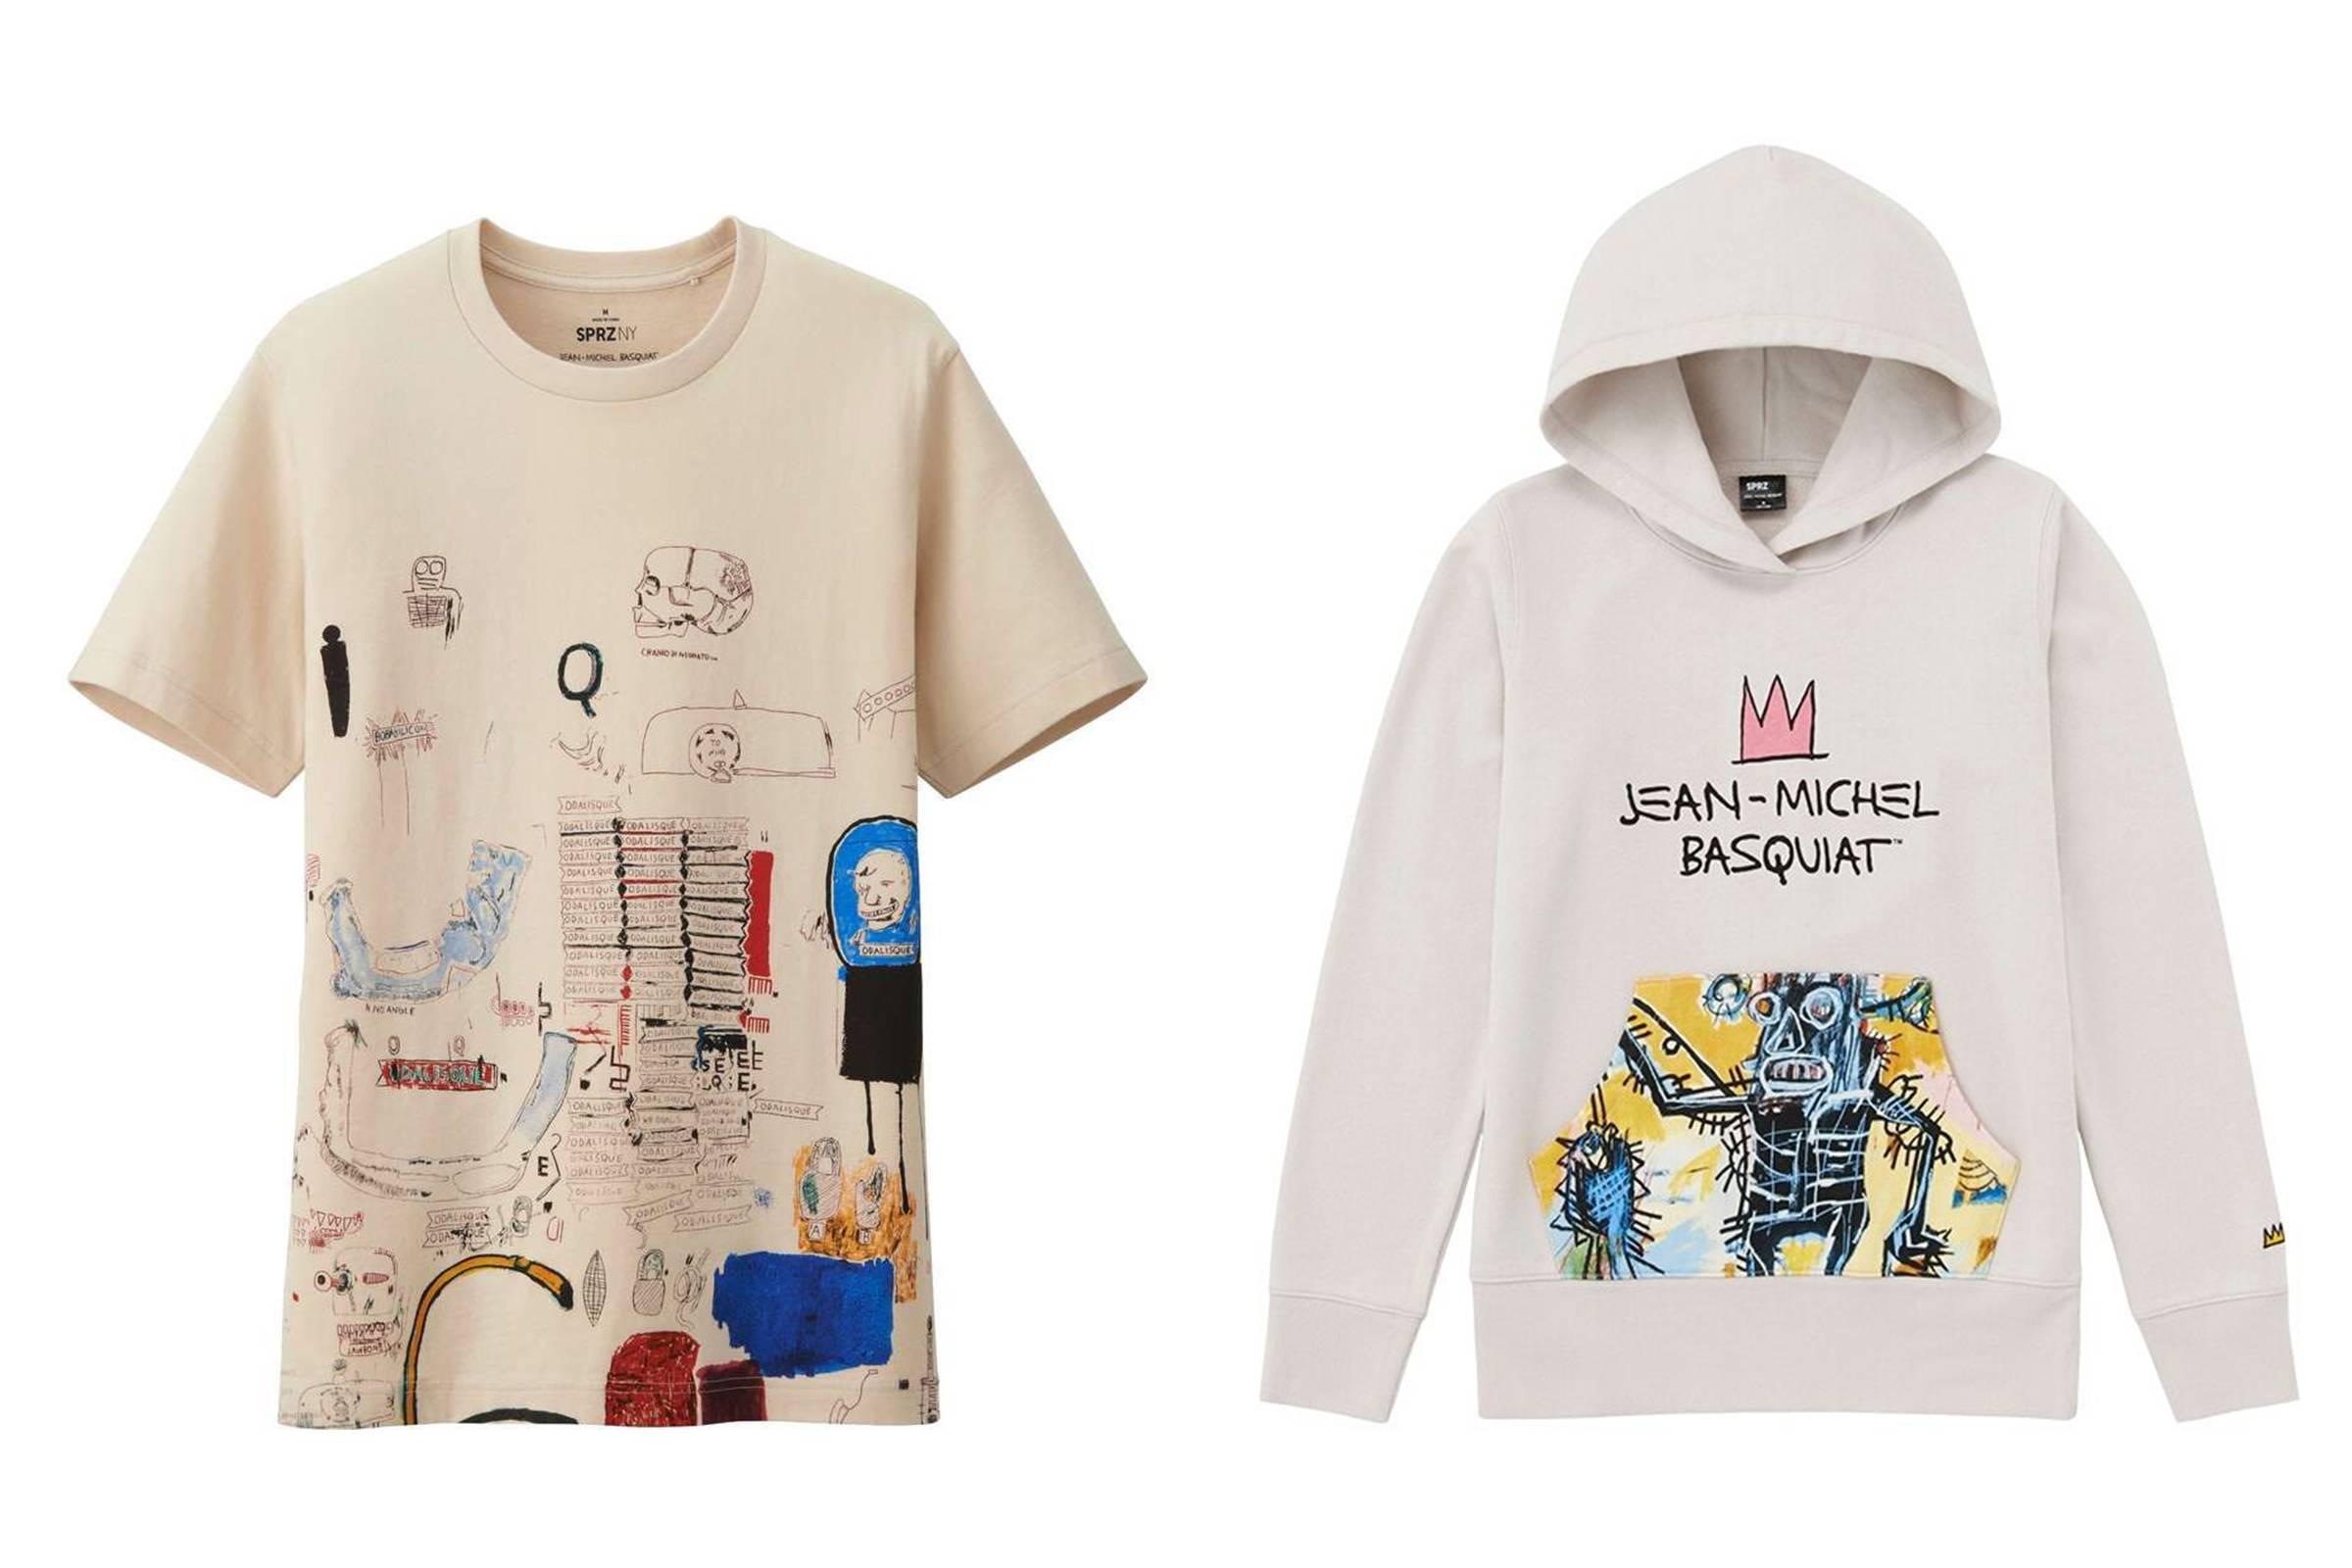 Uniqlo SPRZ NY x Estate of Jean-Michel Basquiat Spring 2014 (ONGOING)